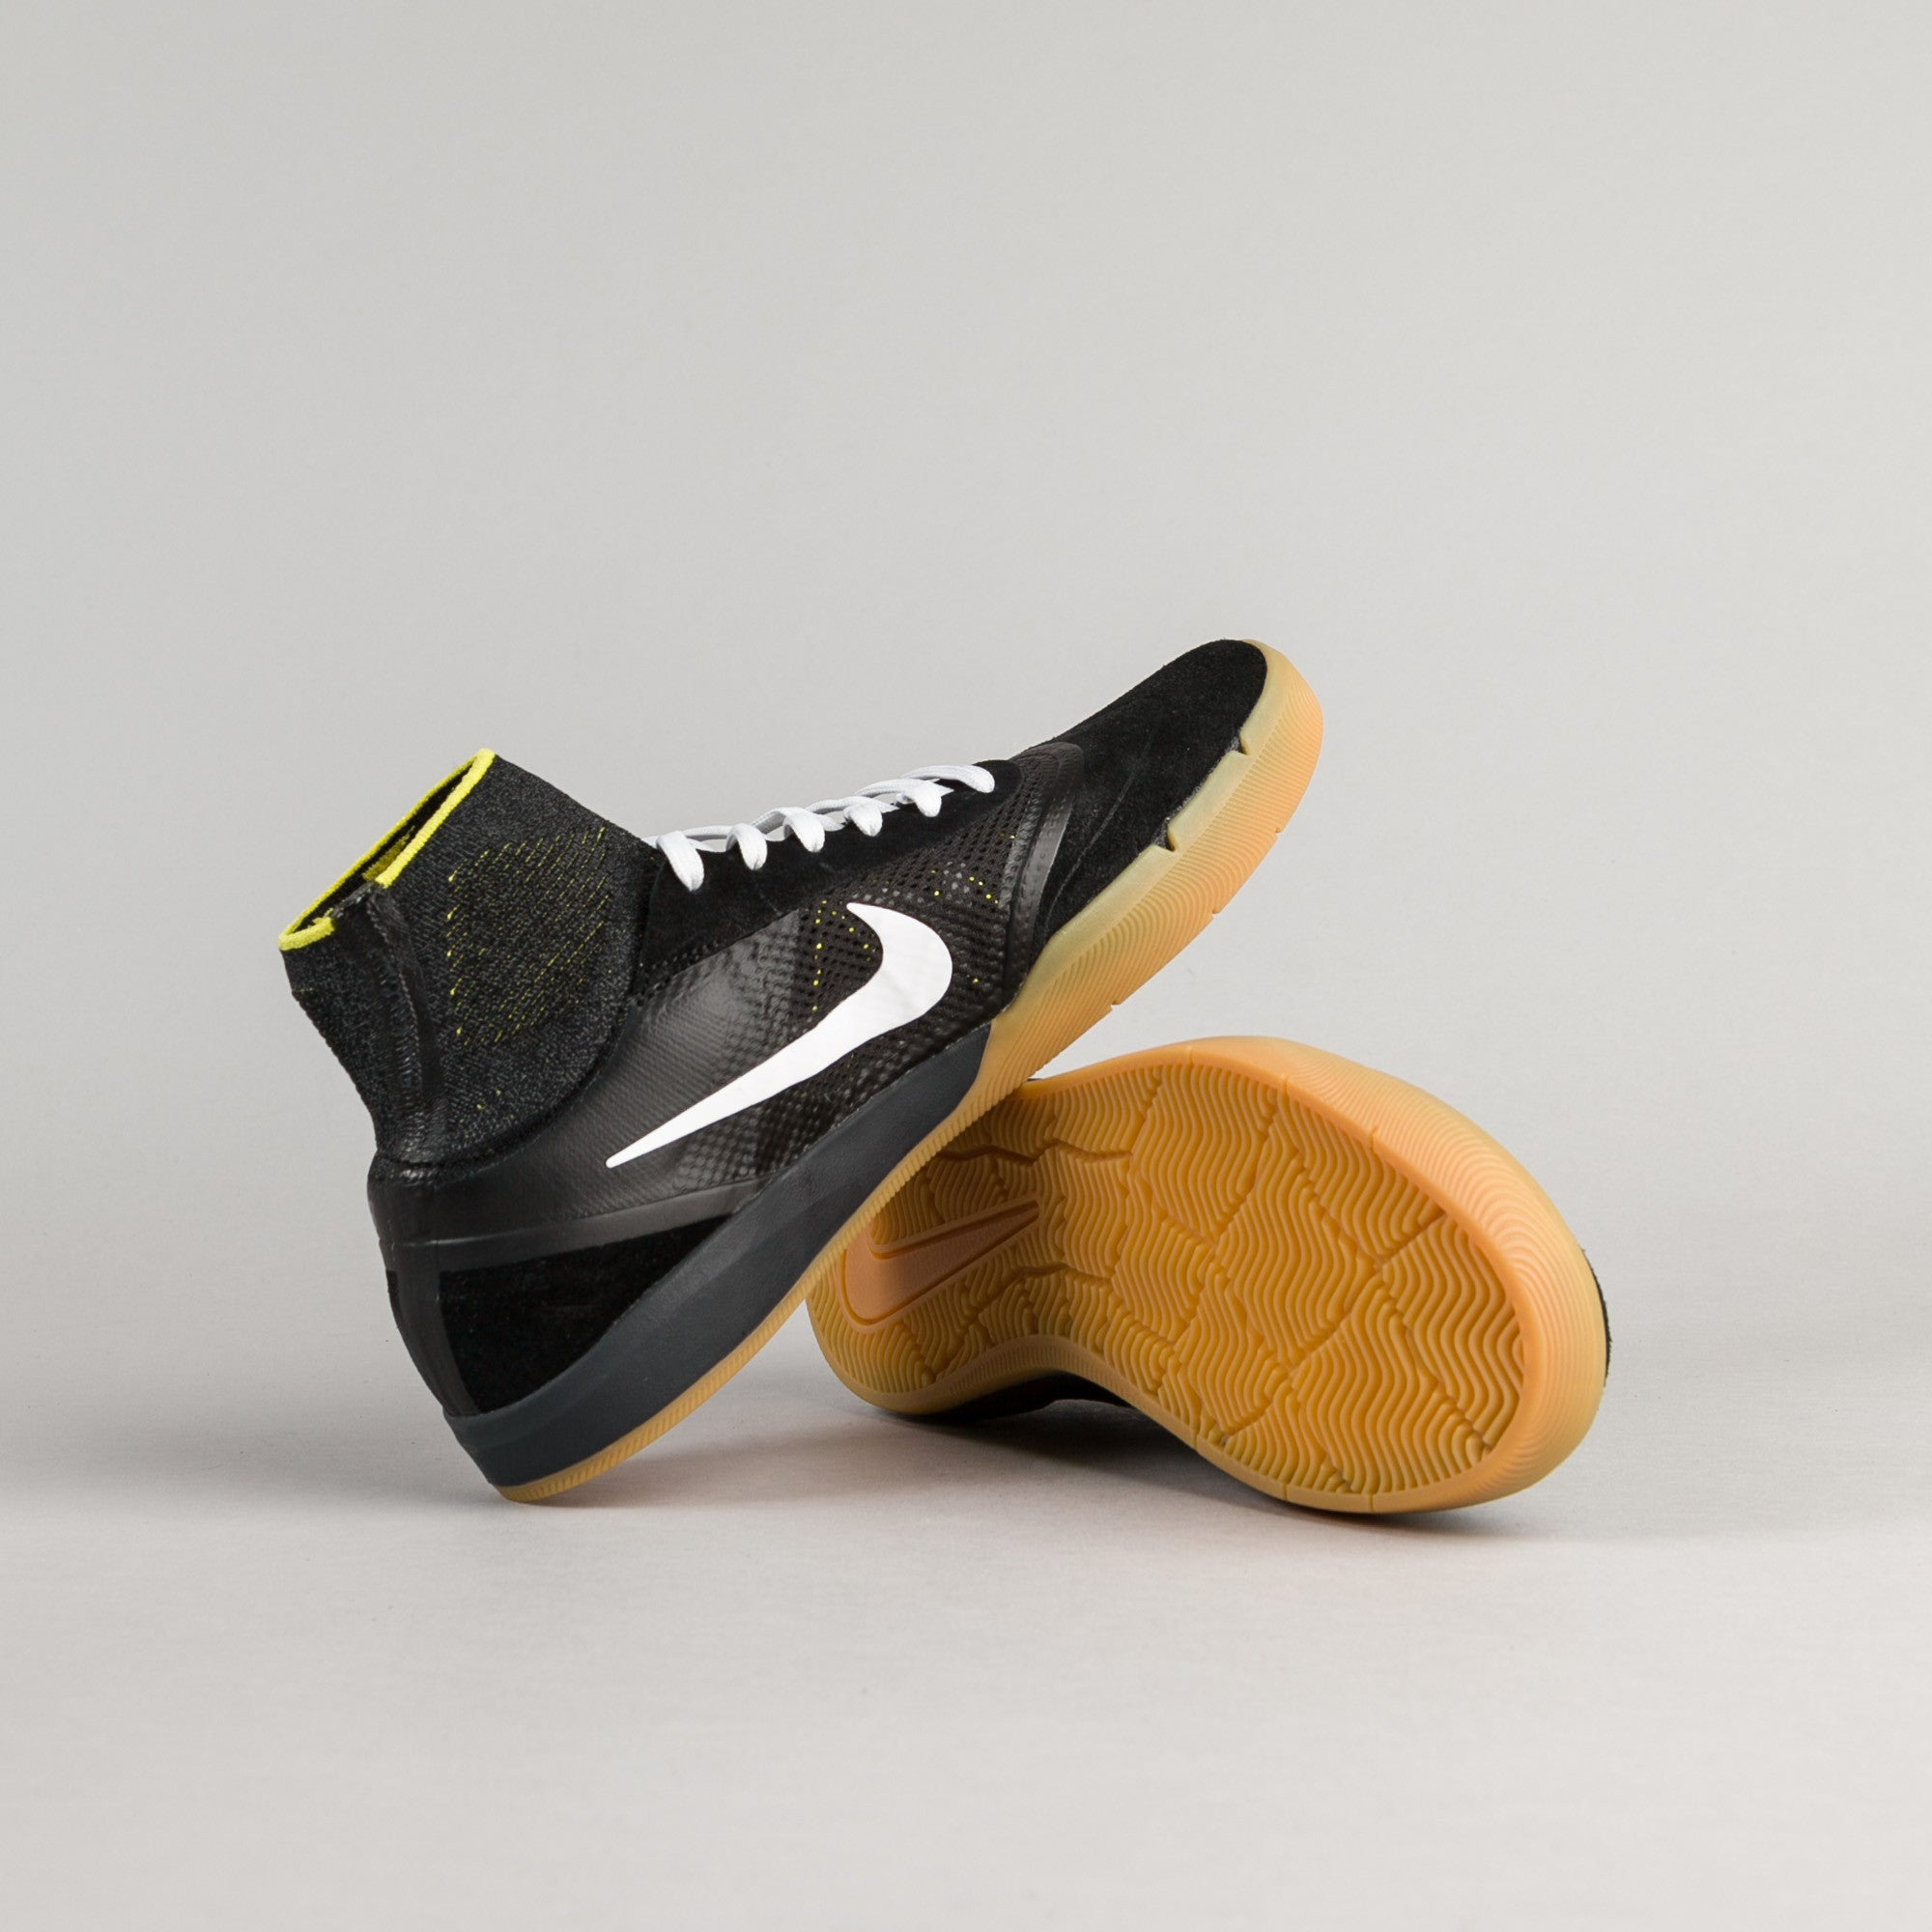 Nike SB Koston 3 Hyperfeel Shoes - Black / White - Yellow Strike